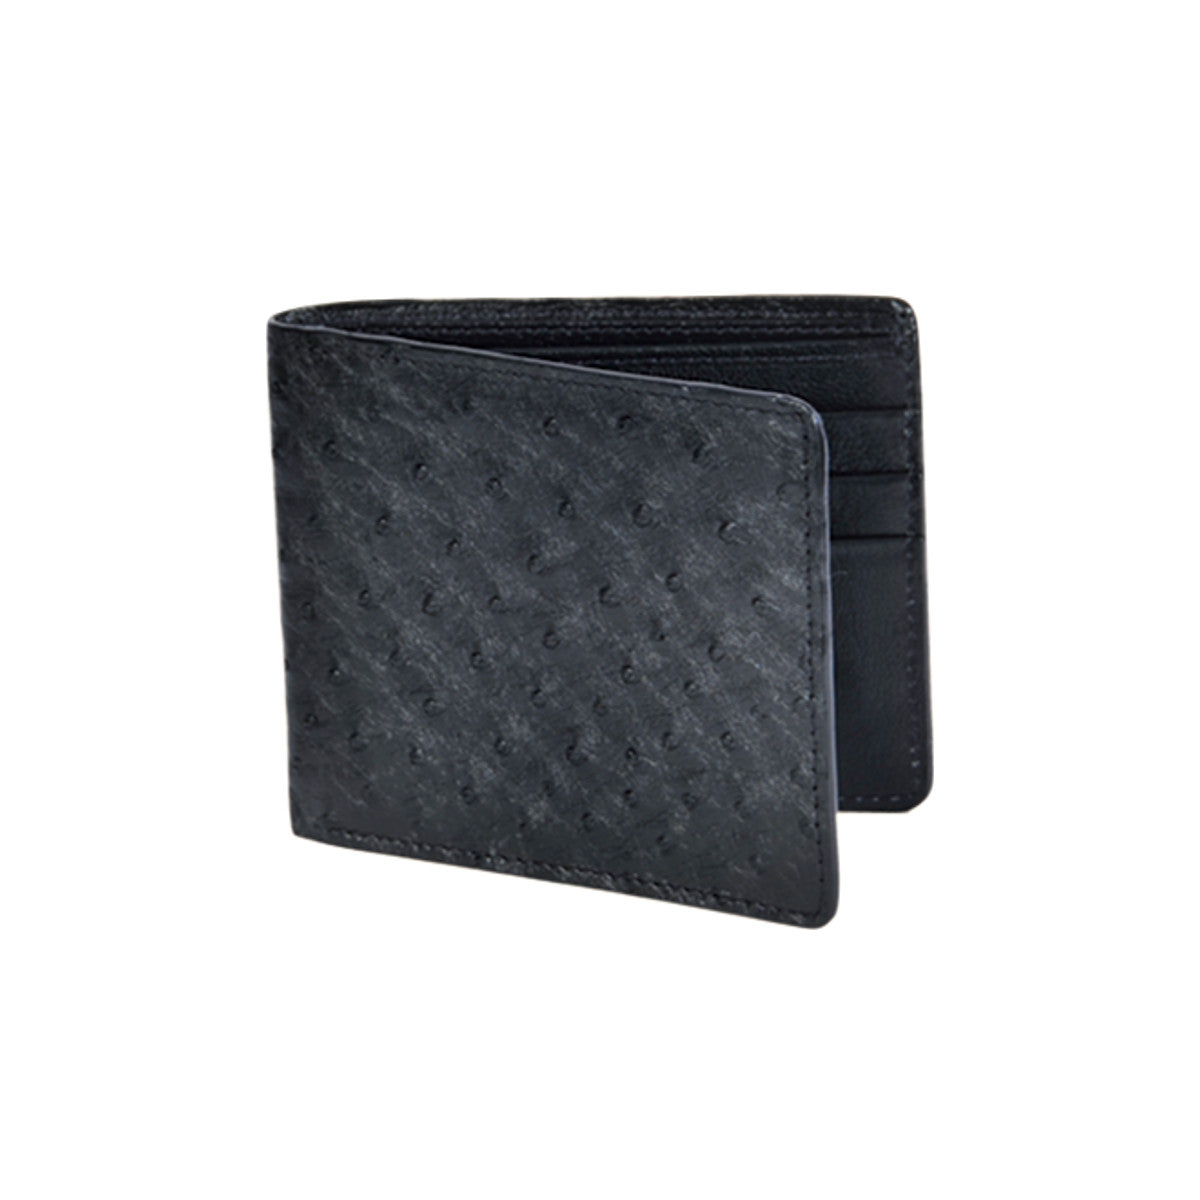 Los Altos Boots Ostrich Wallet